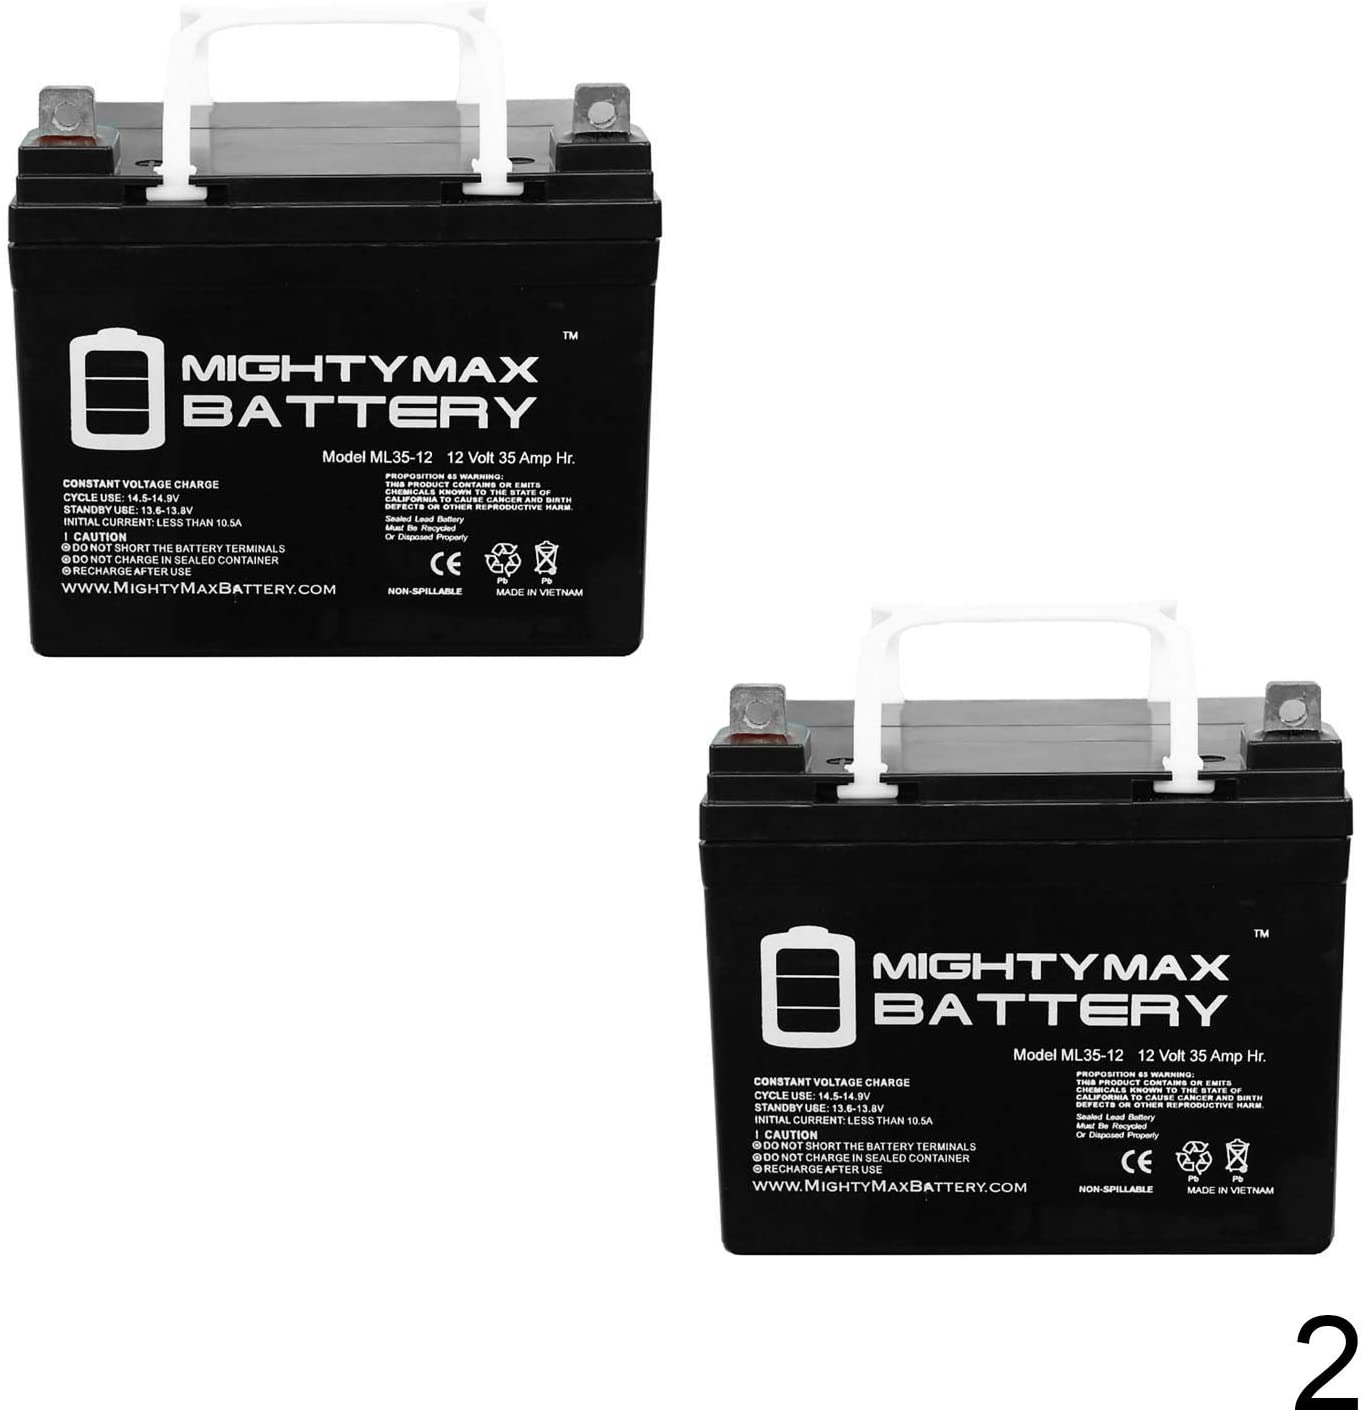 Mighty Max Battery 12V 35AH Wheelchair Battery Replaces 33ah Zeus PC33-12 - 2 Pack Brand Product